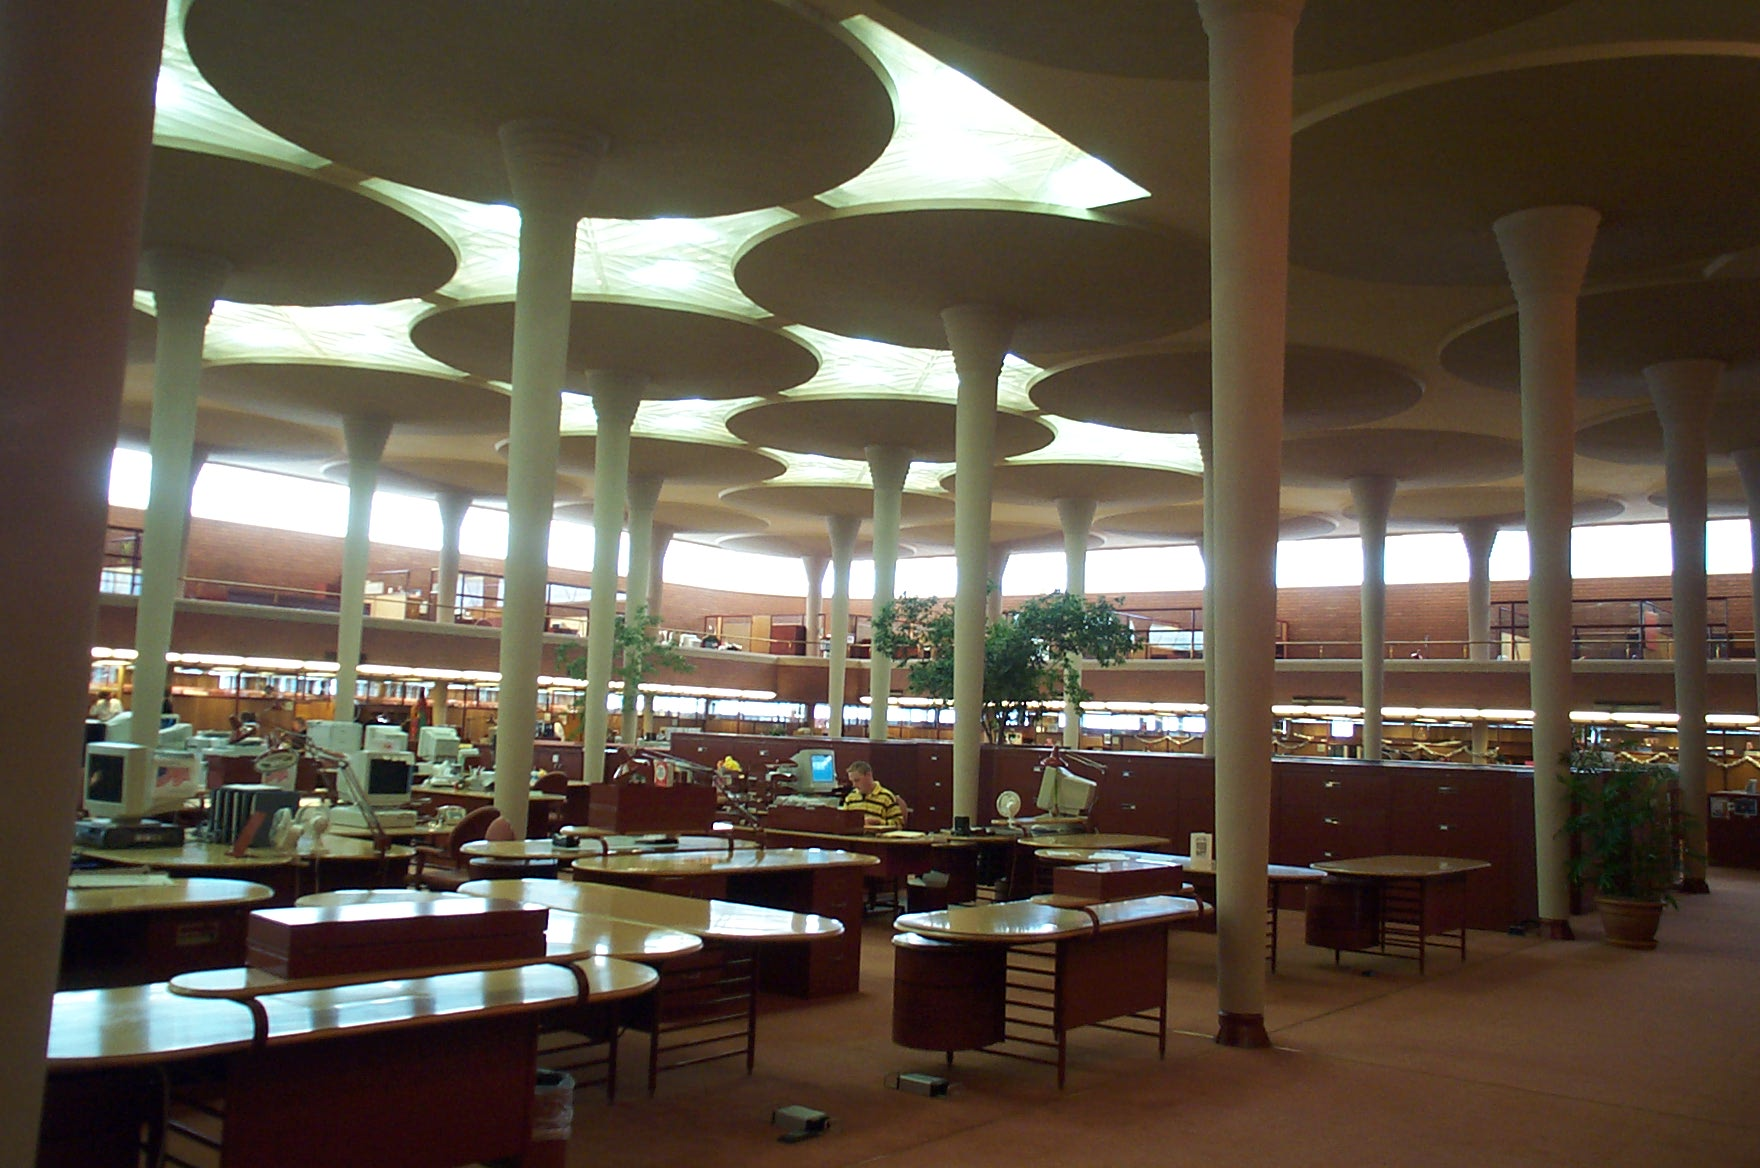 Johnson Wax inside bldg